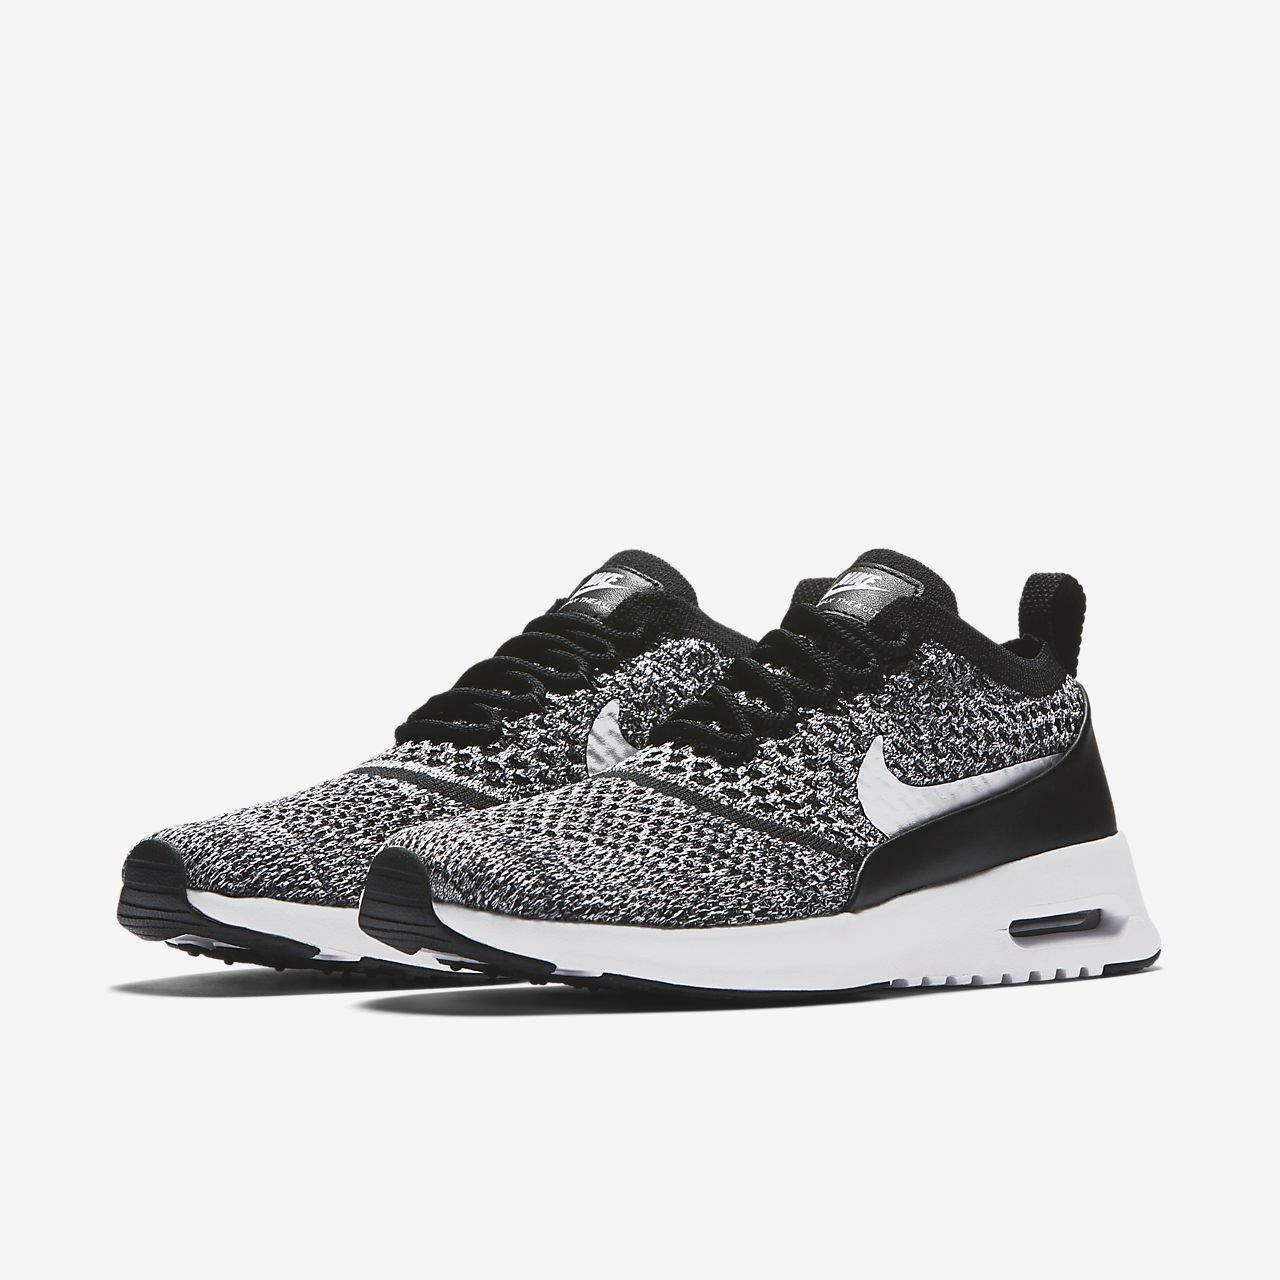 nike air max thea schwarz damen sale $60.99